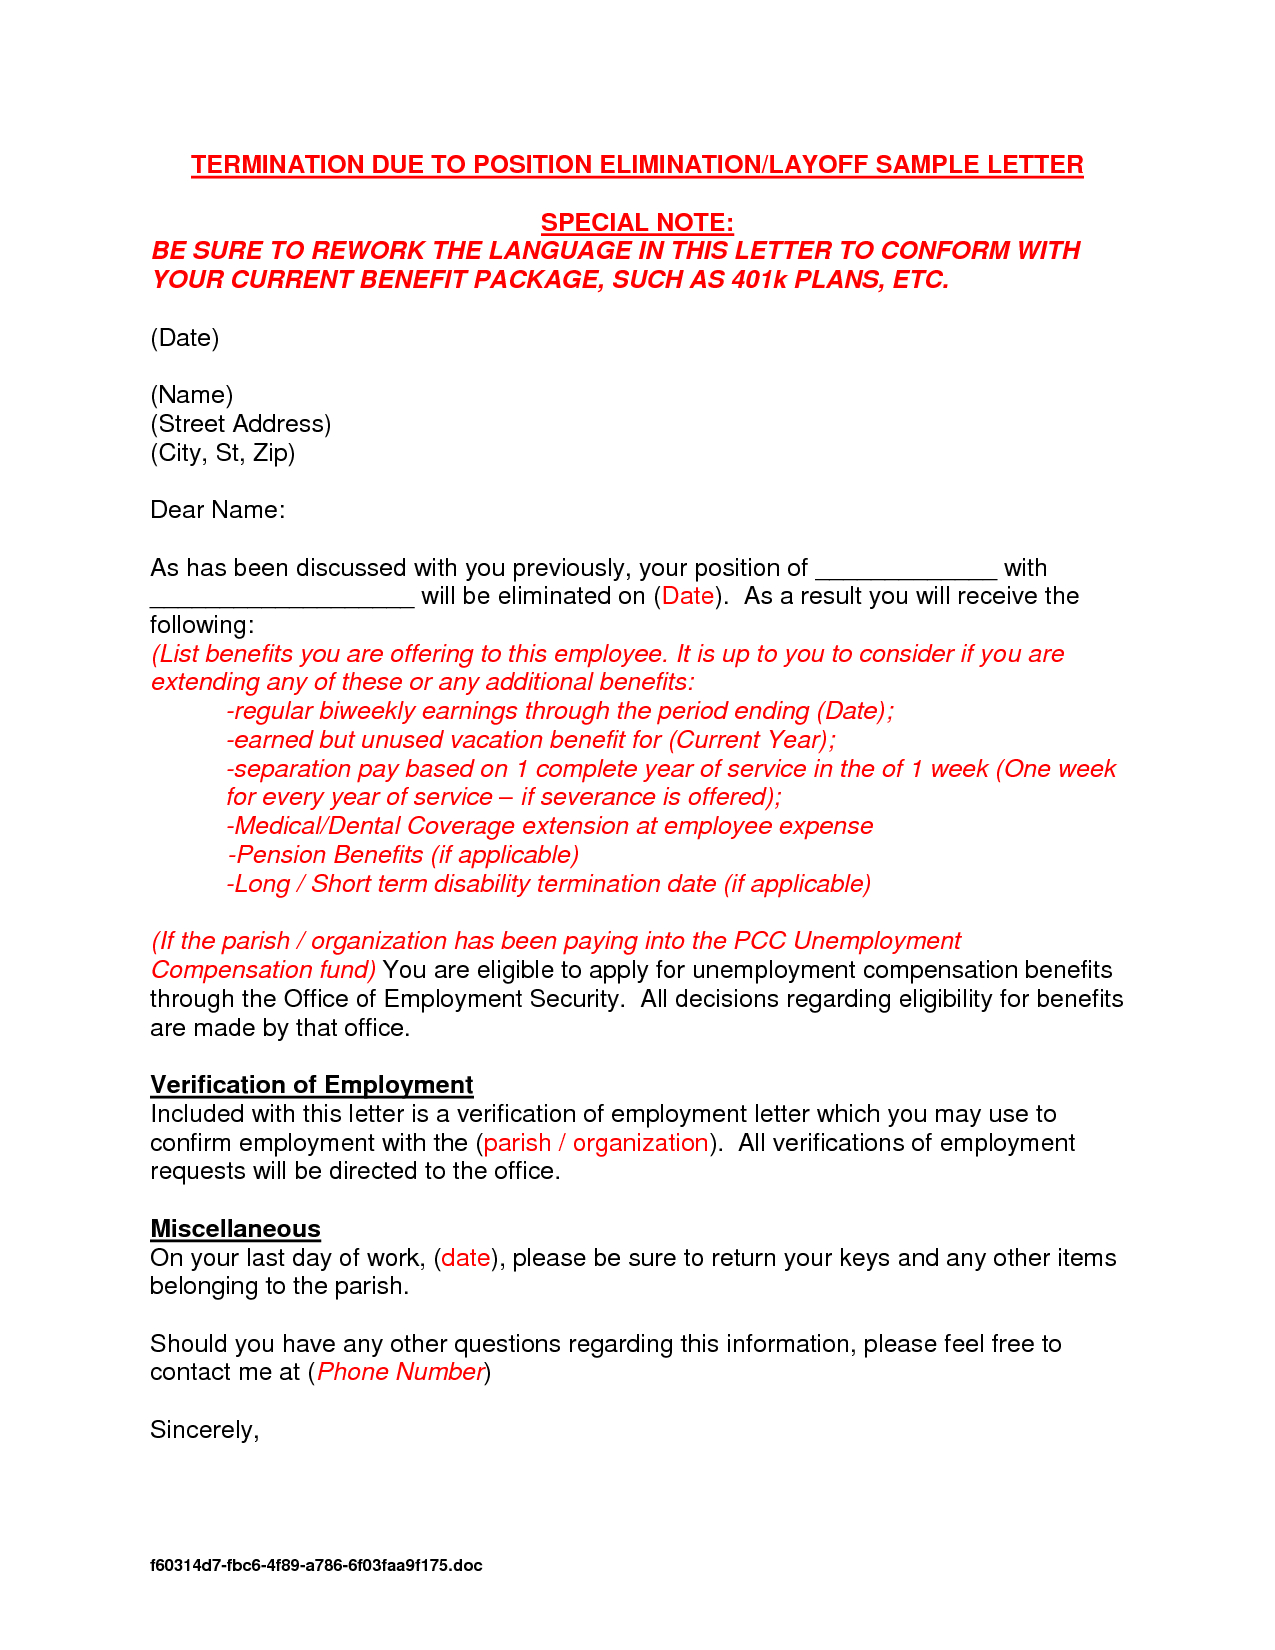 Demotion Letter Template - Lovely Termination Employment Letter Sample Your Template